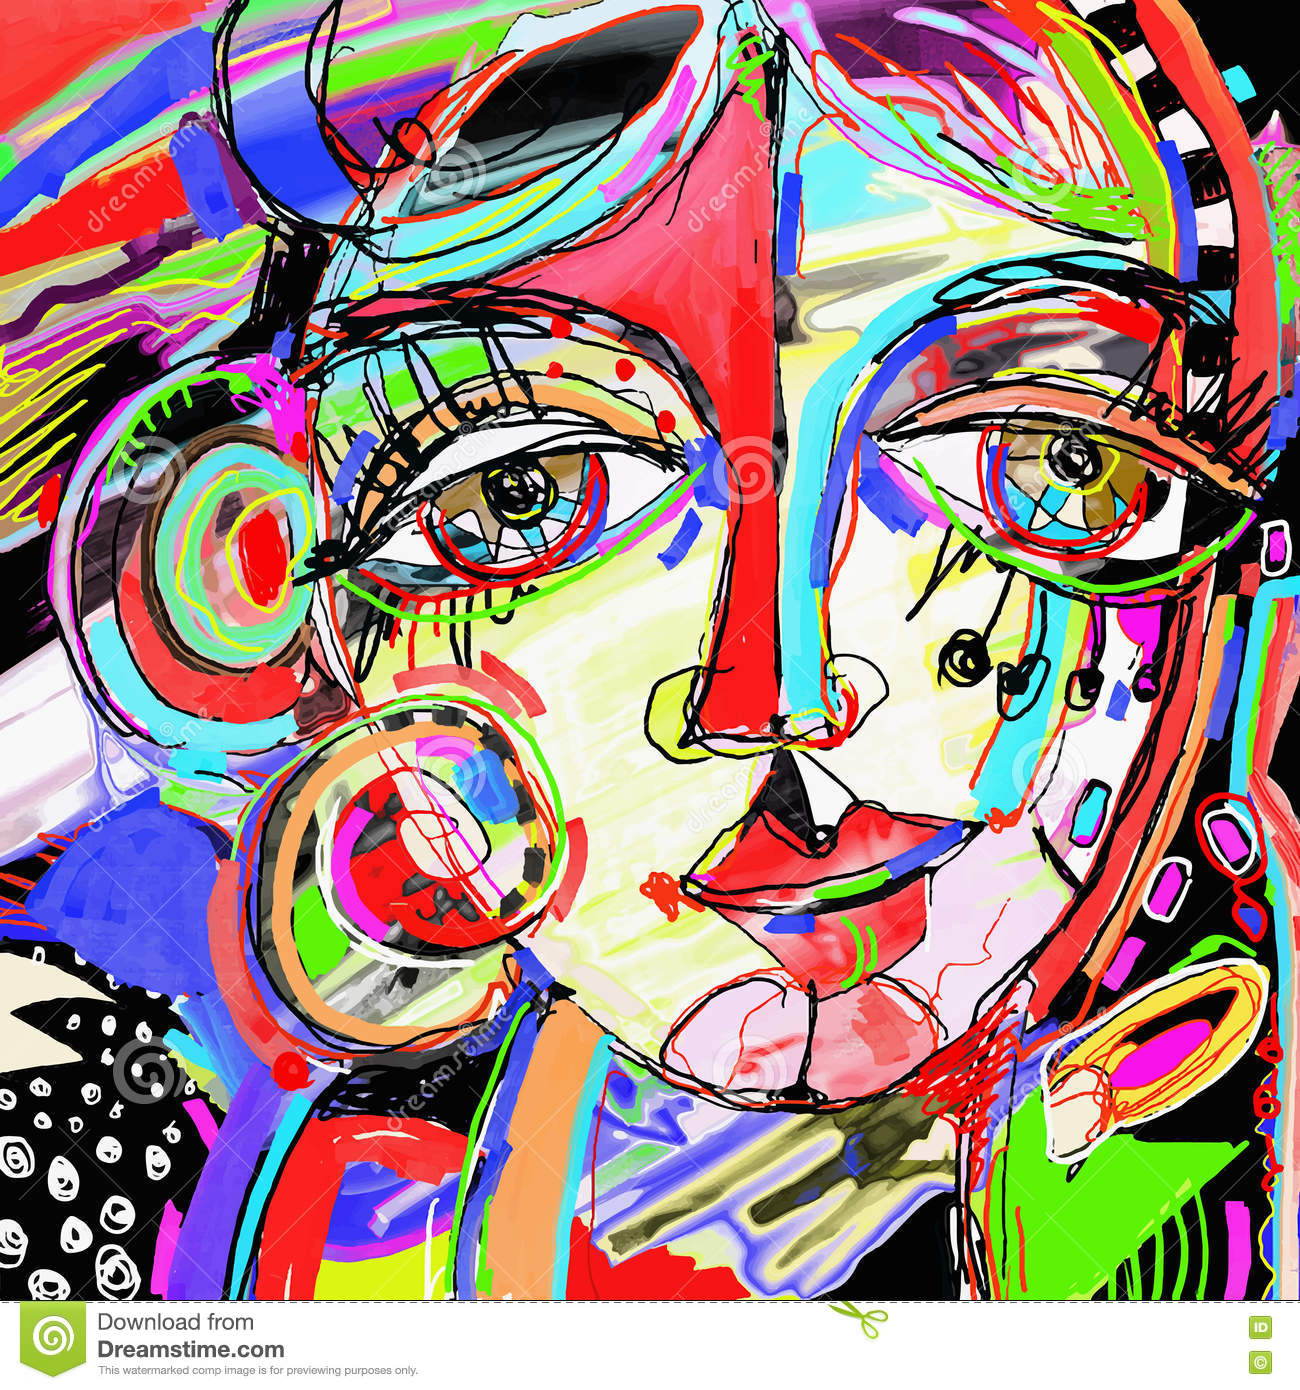 Original abstract digital painting of human face colorful for Bilder modern art